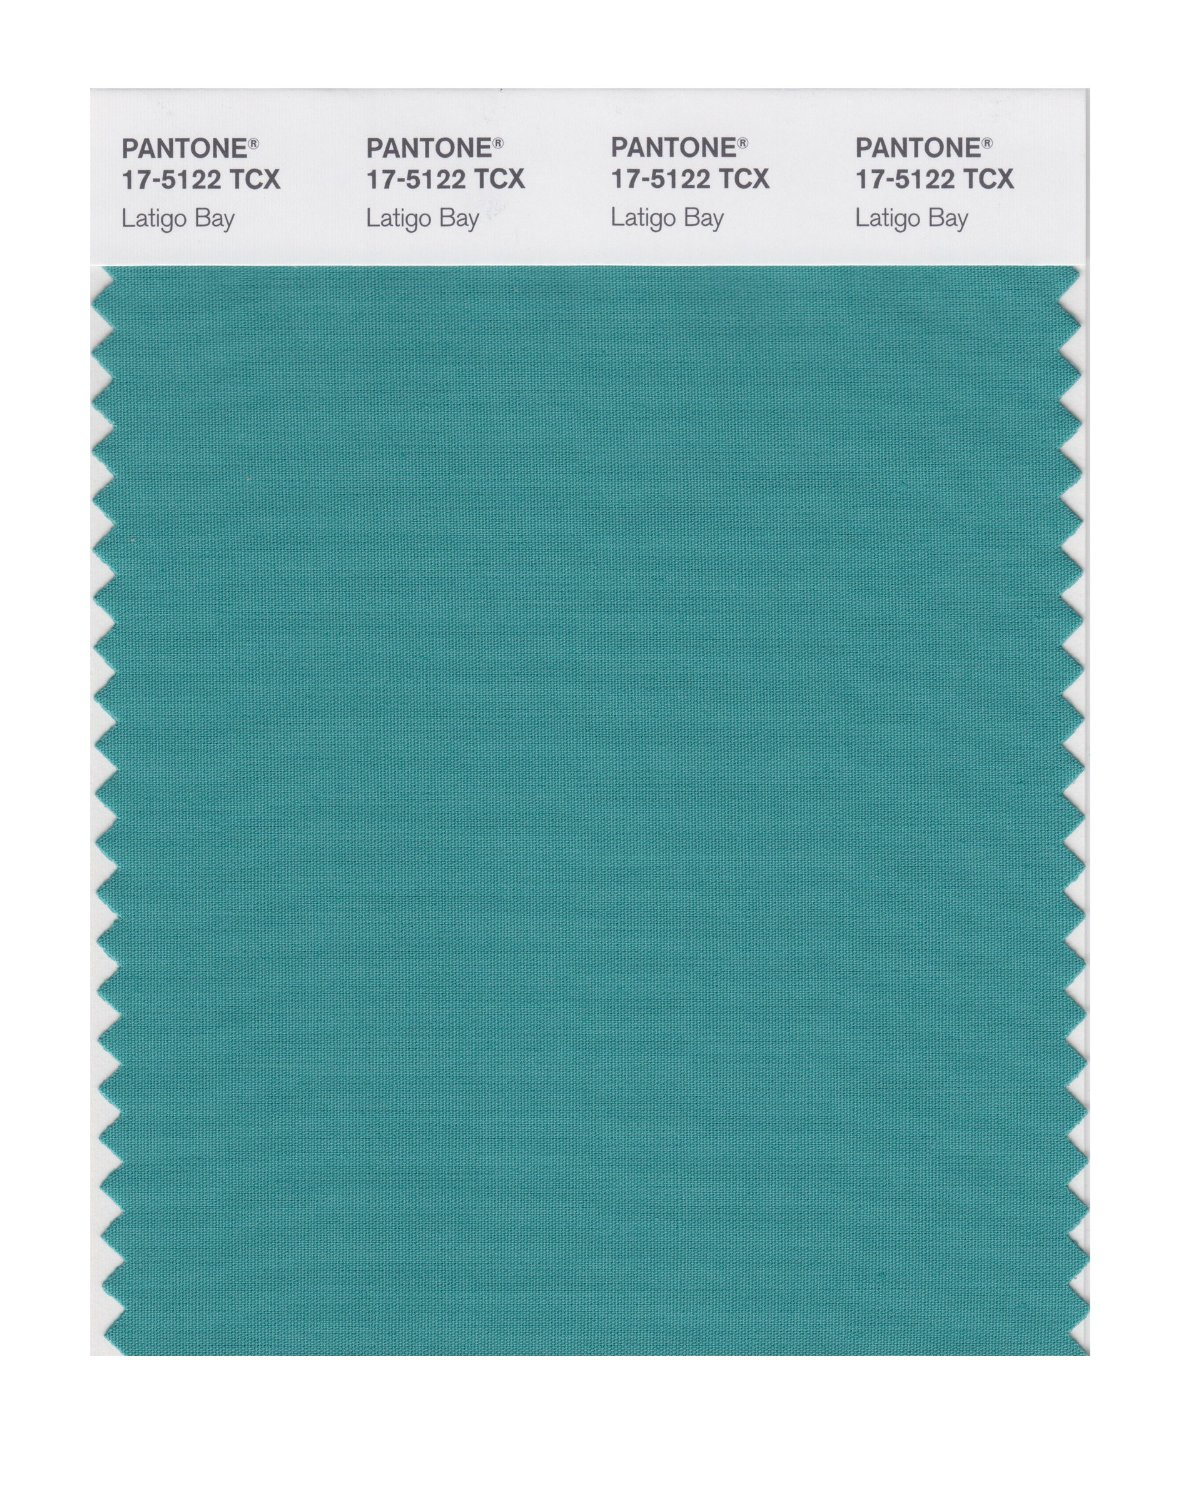 Pantone Smart Swatch 17-5122 Latigo Bay